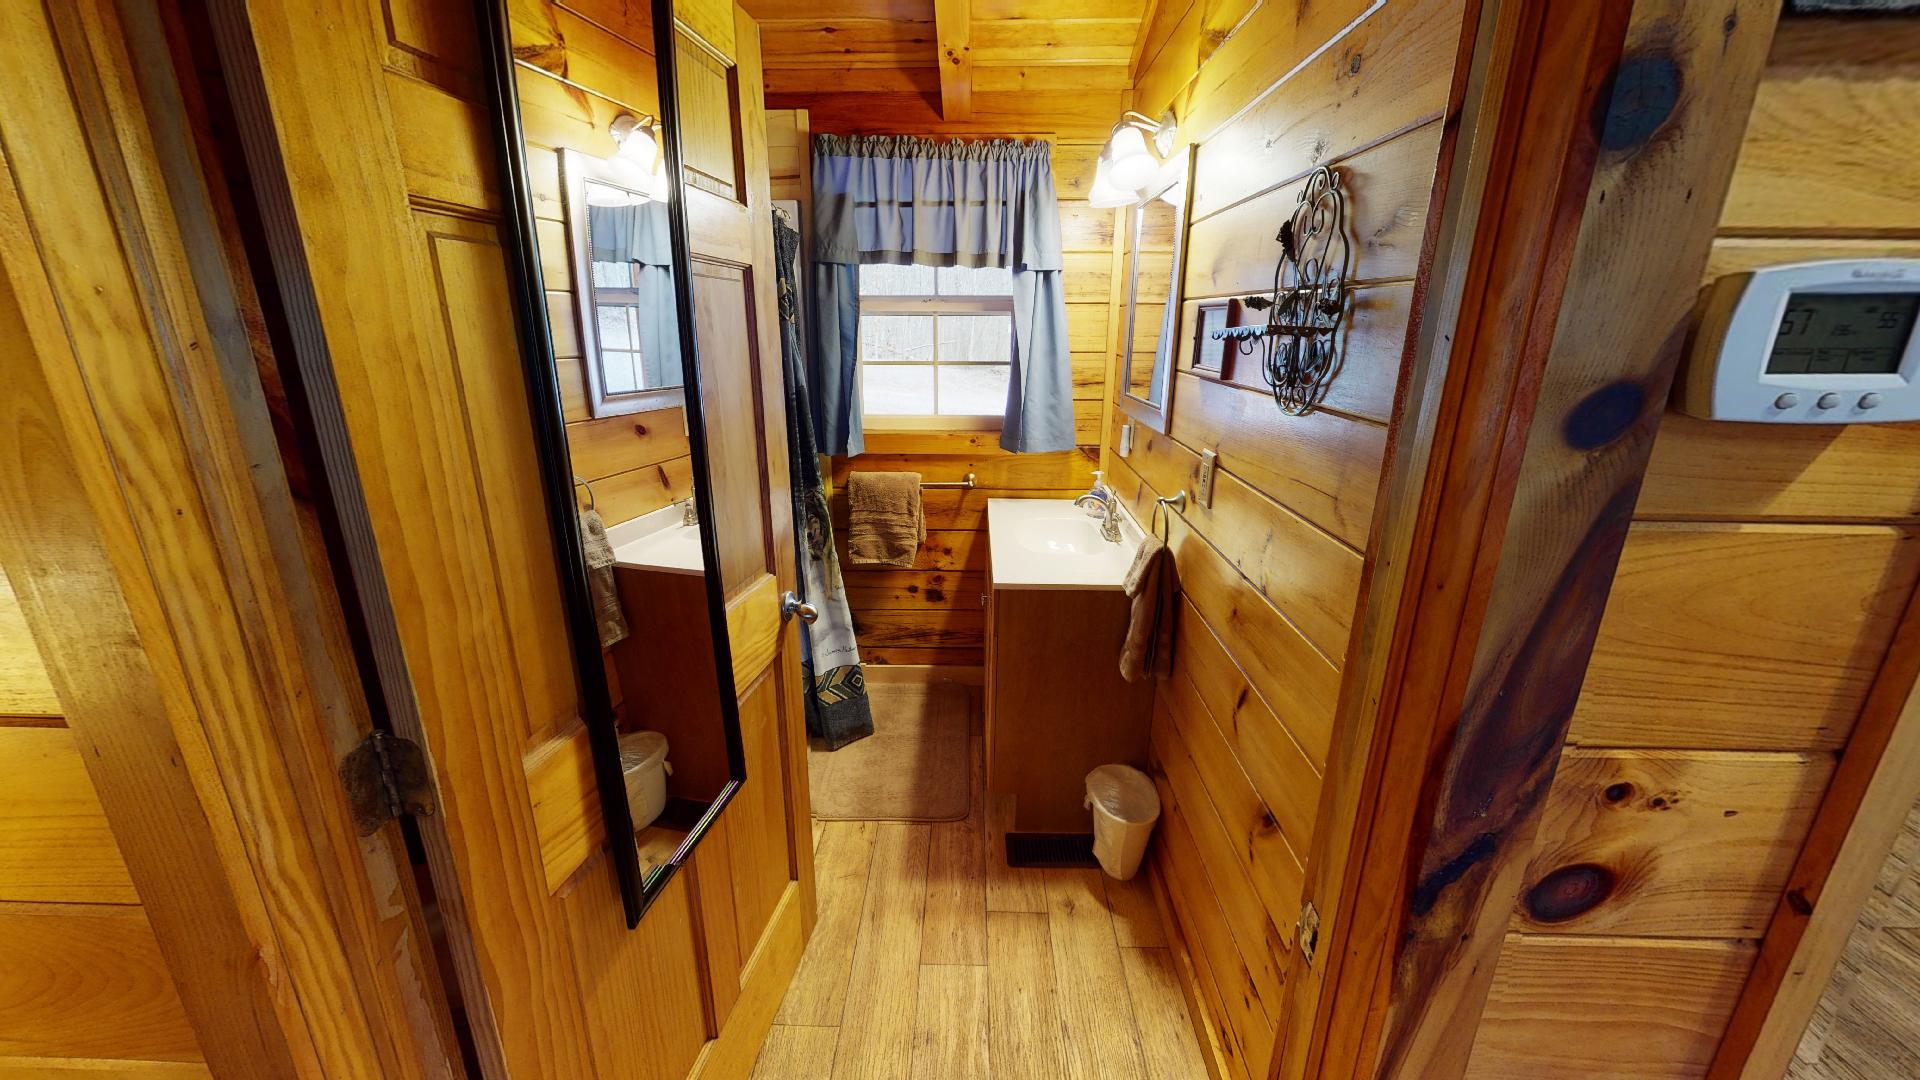 Silver Wolf Bathroom - Private bathroom with walk in shower.